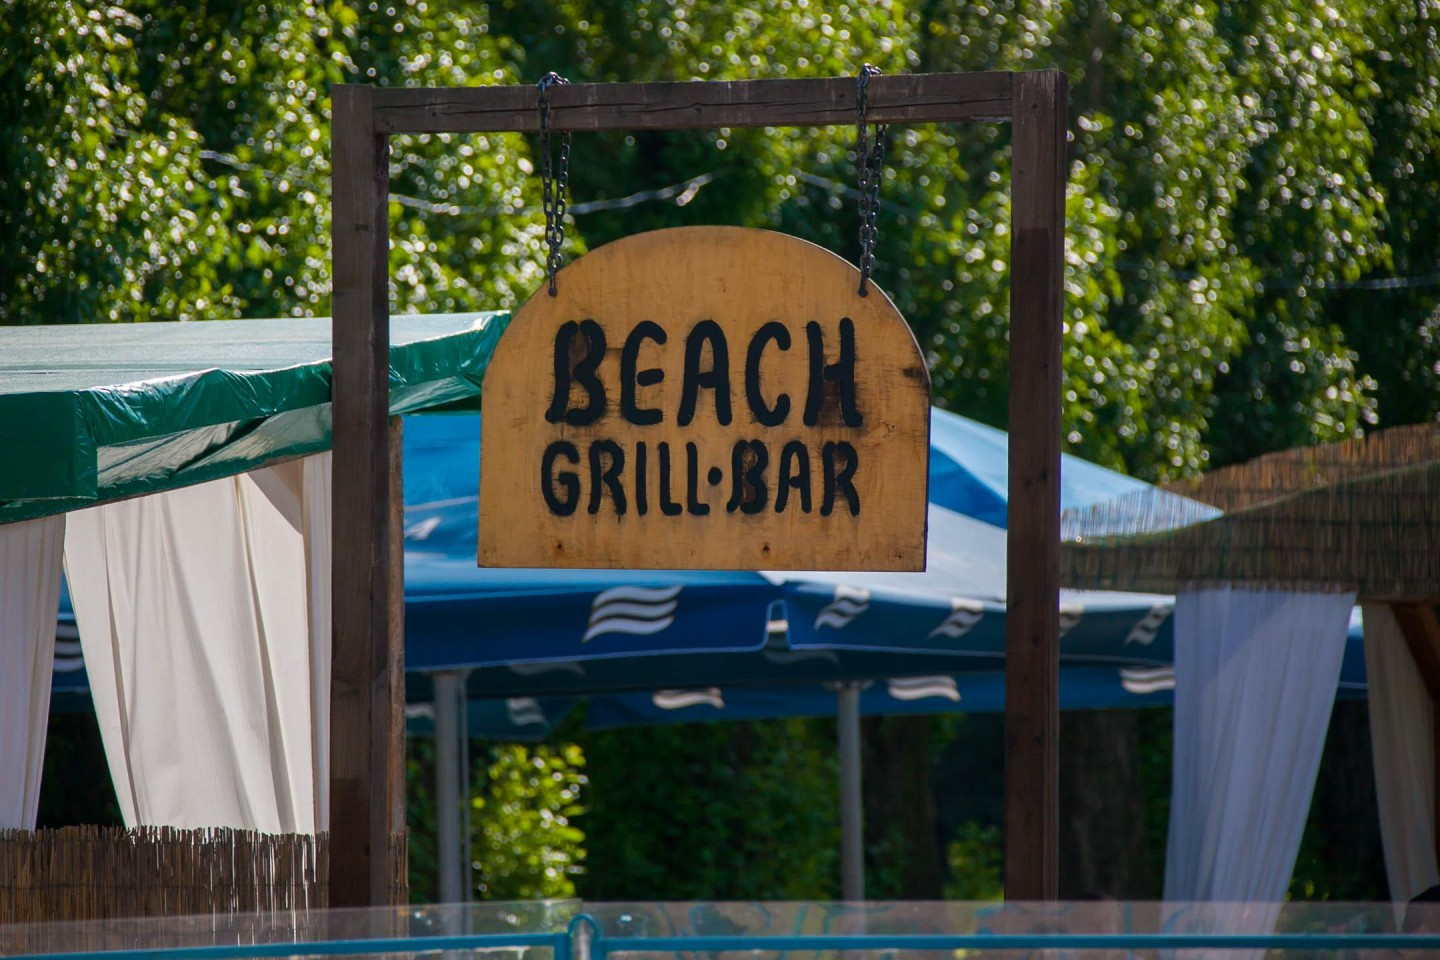 Beach grill bar — ParkSeason